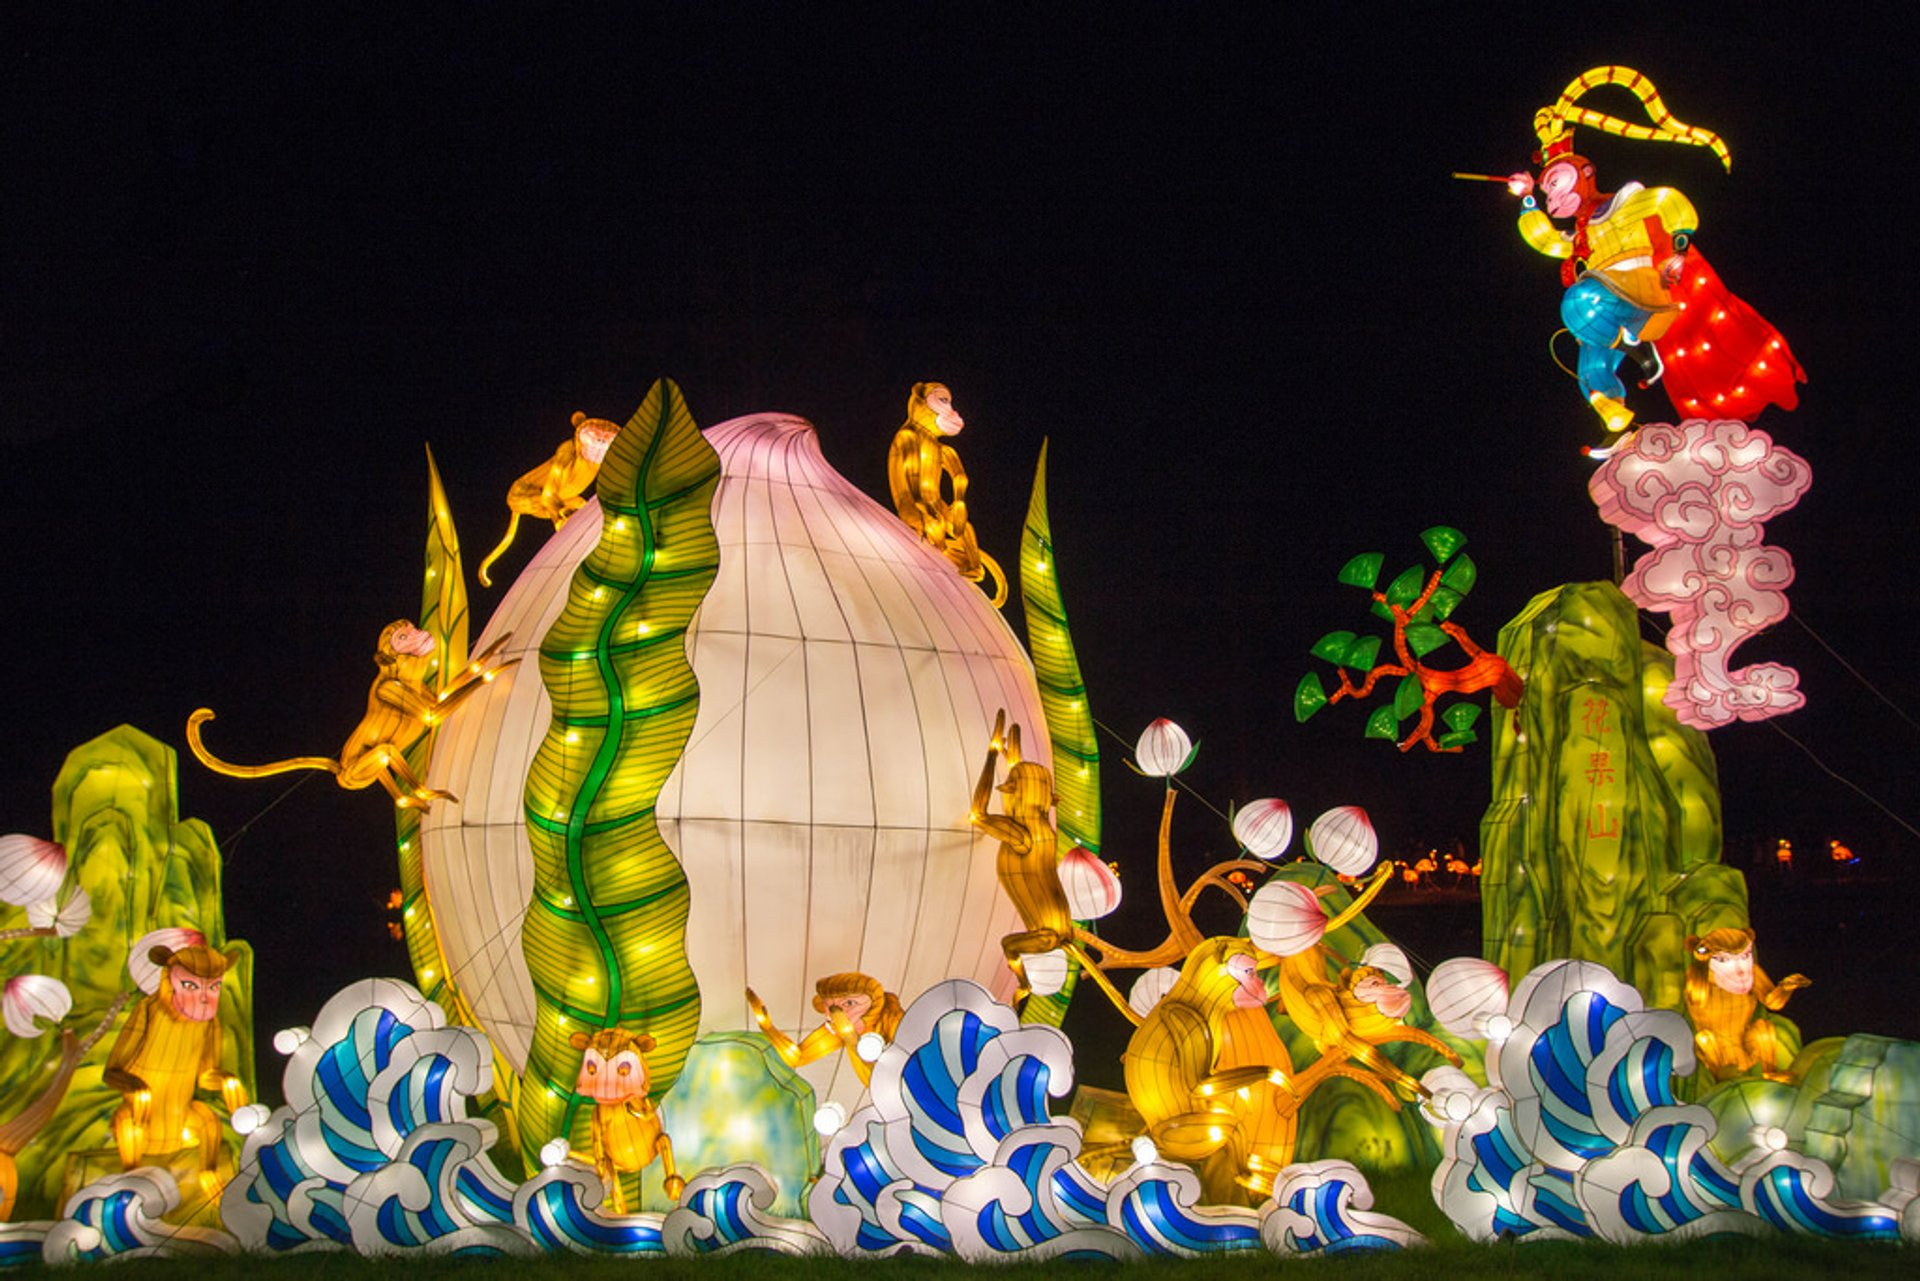 Magical Lantern Festival in London 2020 - Best Time